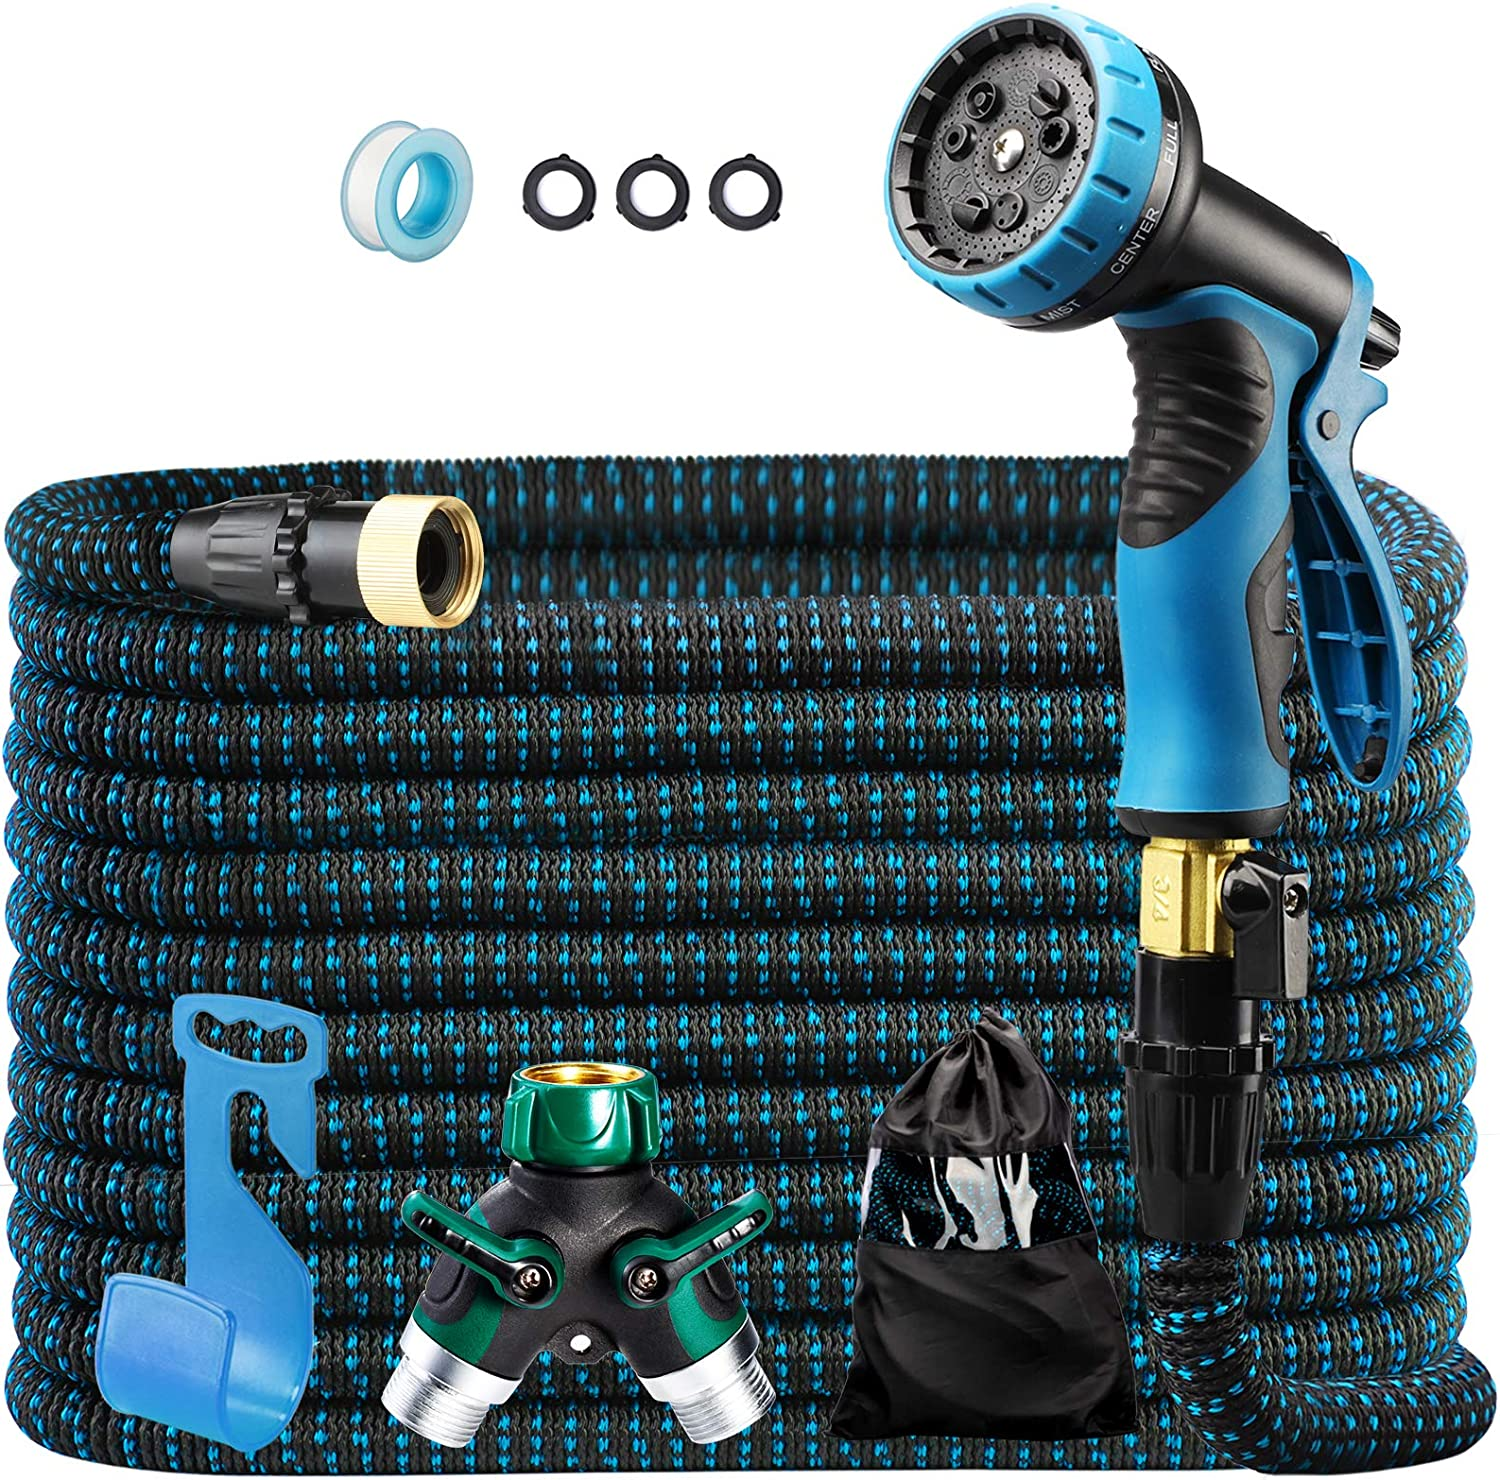 """100ft Expandable Garden Hose Flexible Water Hose in 9 Functions, Heavy Duty with 3/4"""" Brass Fittings, High-Pressure Metal Spray Nozzle - Blue"""